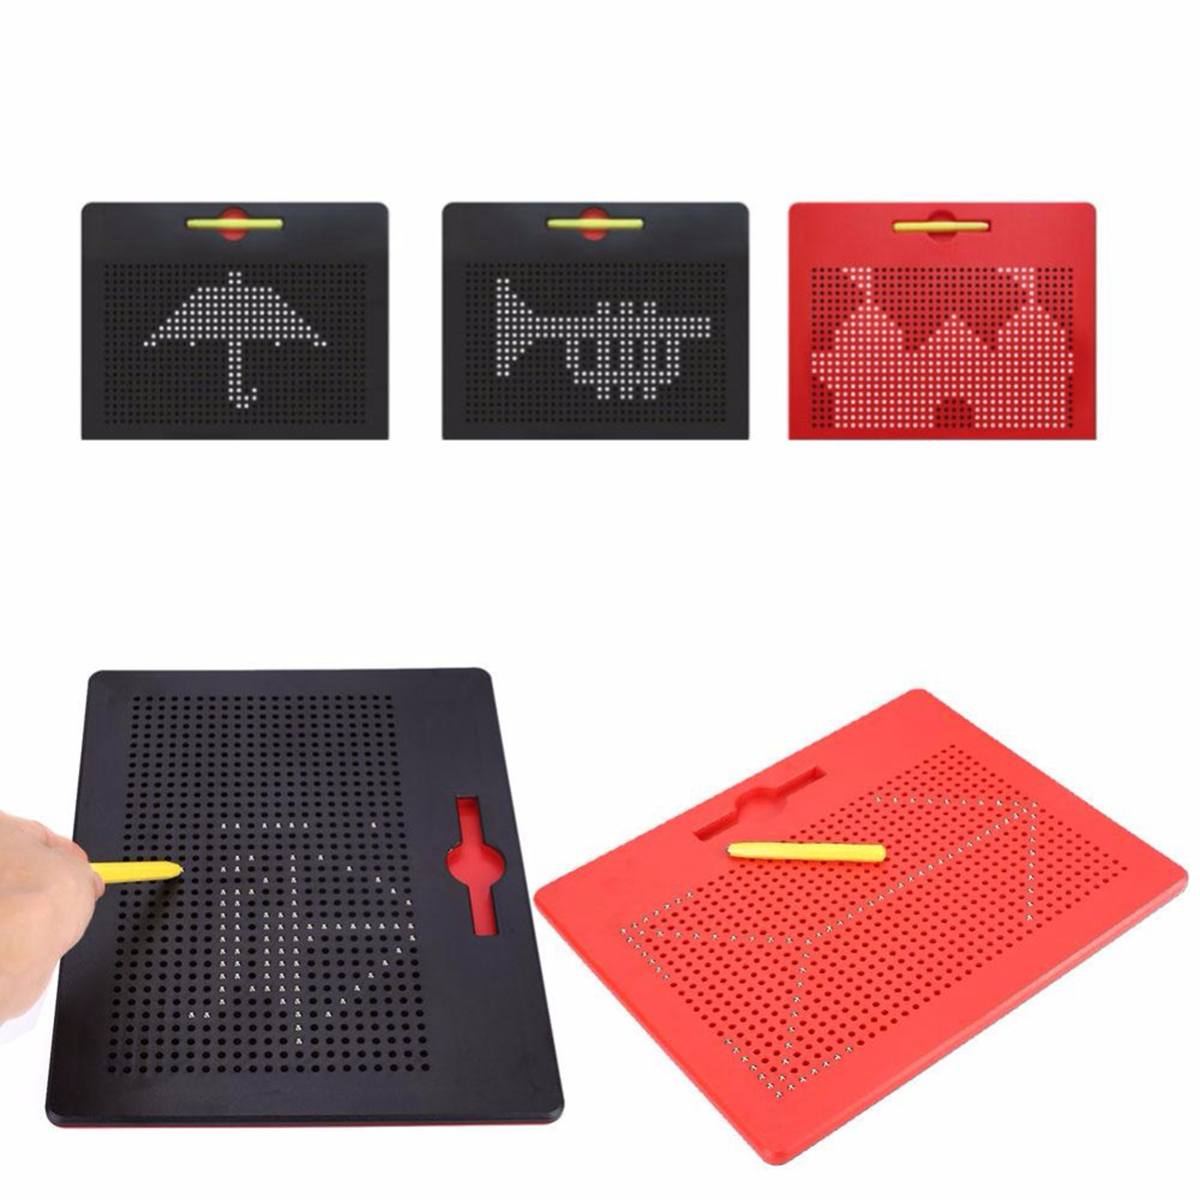 Large Magnetic Tablet Magnet Pad Drawing Board Bead Magnet Stylus Pen Bead Learning Educational Writing Memo Board Kid Toy